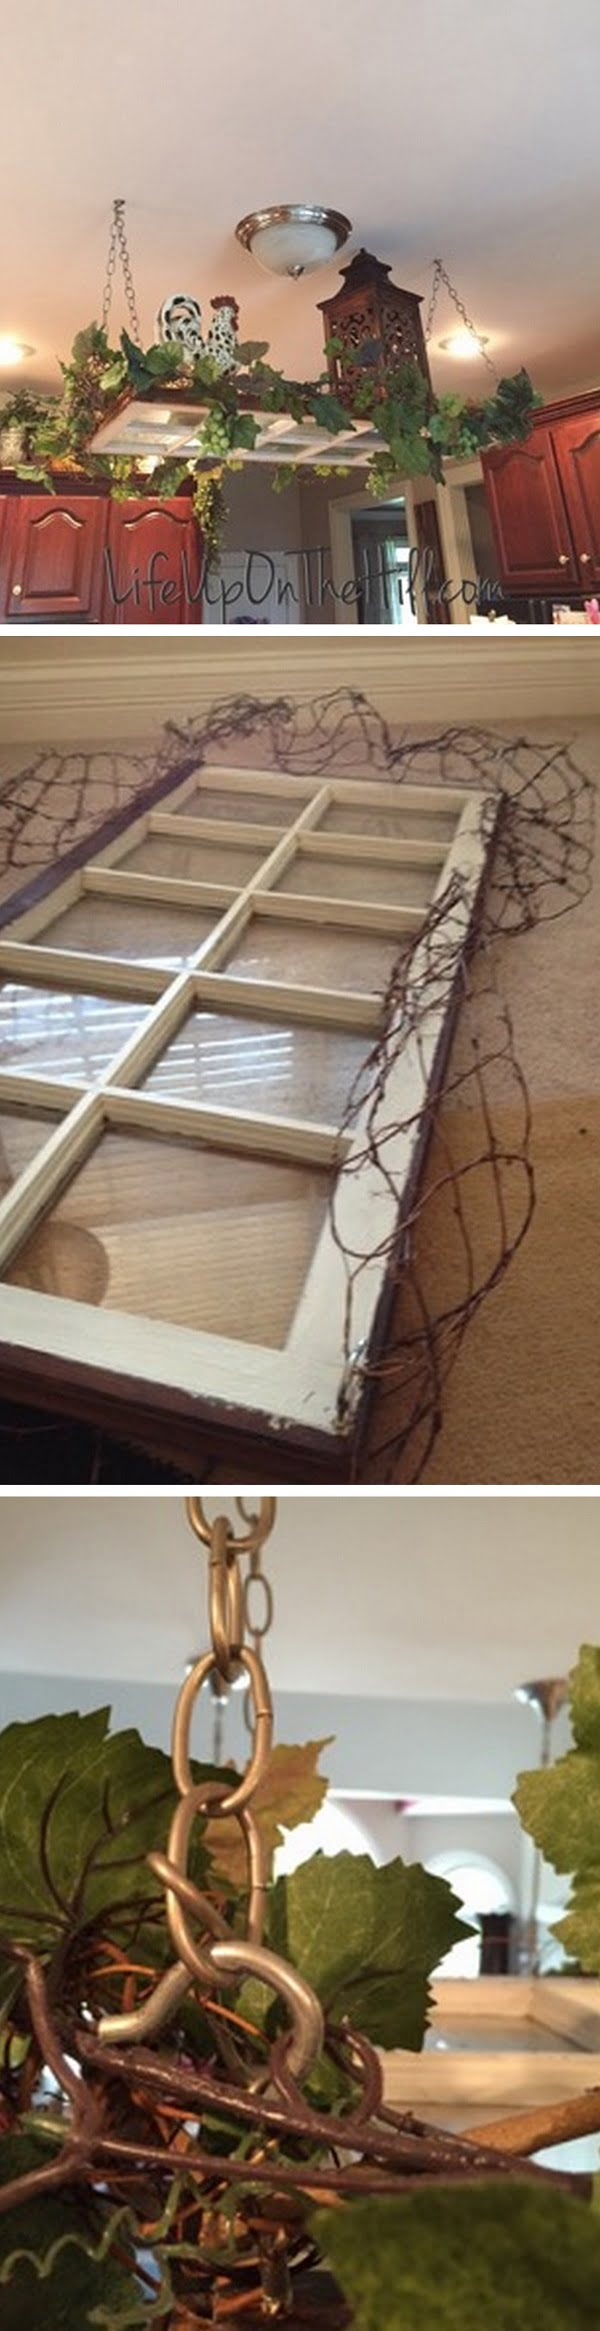 Check out the tutorial how to make a DIY decorative indoor garden from an old window